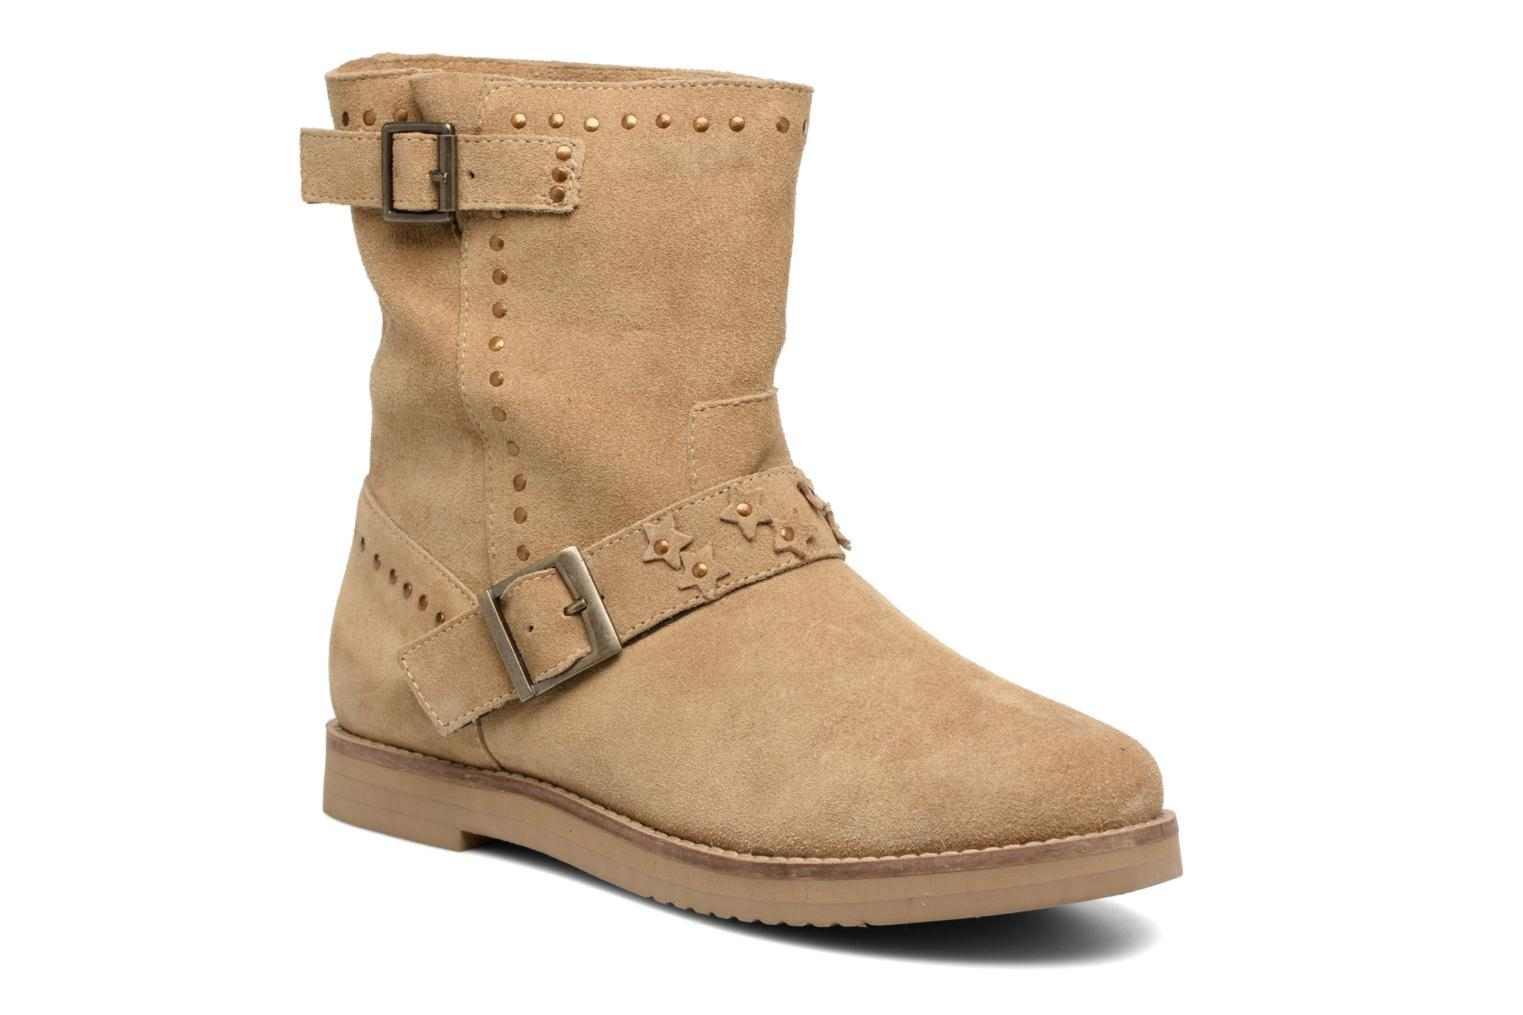 Marques Chaussure femme Coolway femme Mica Cuero